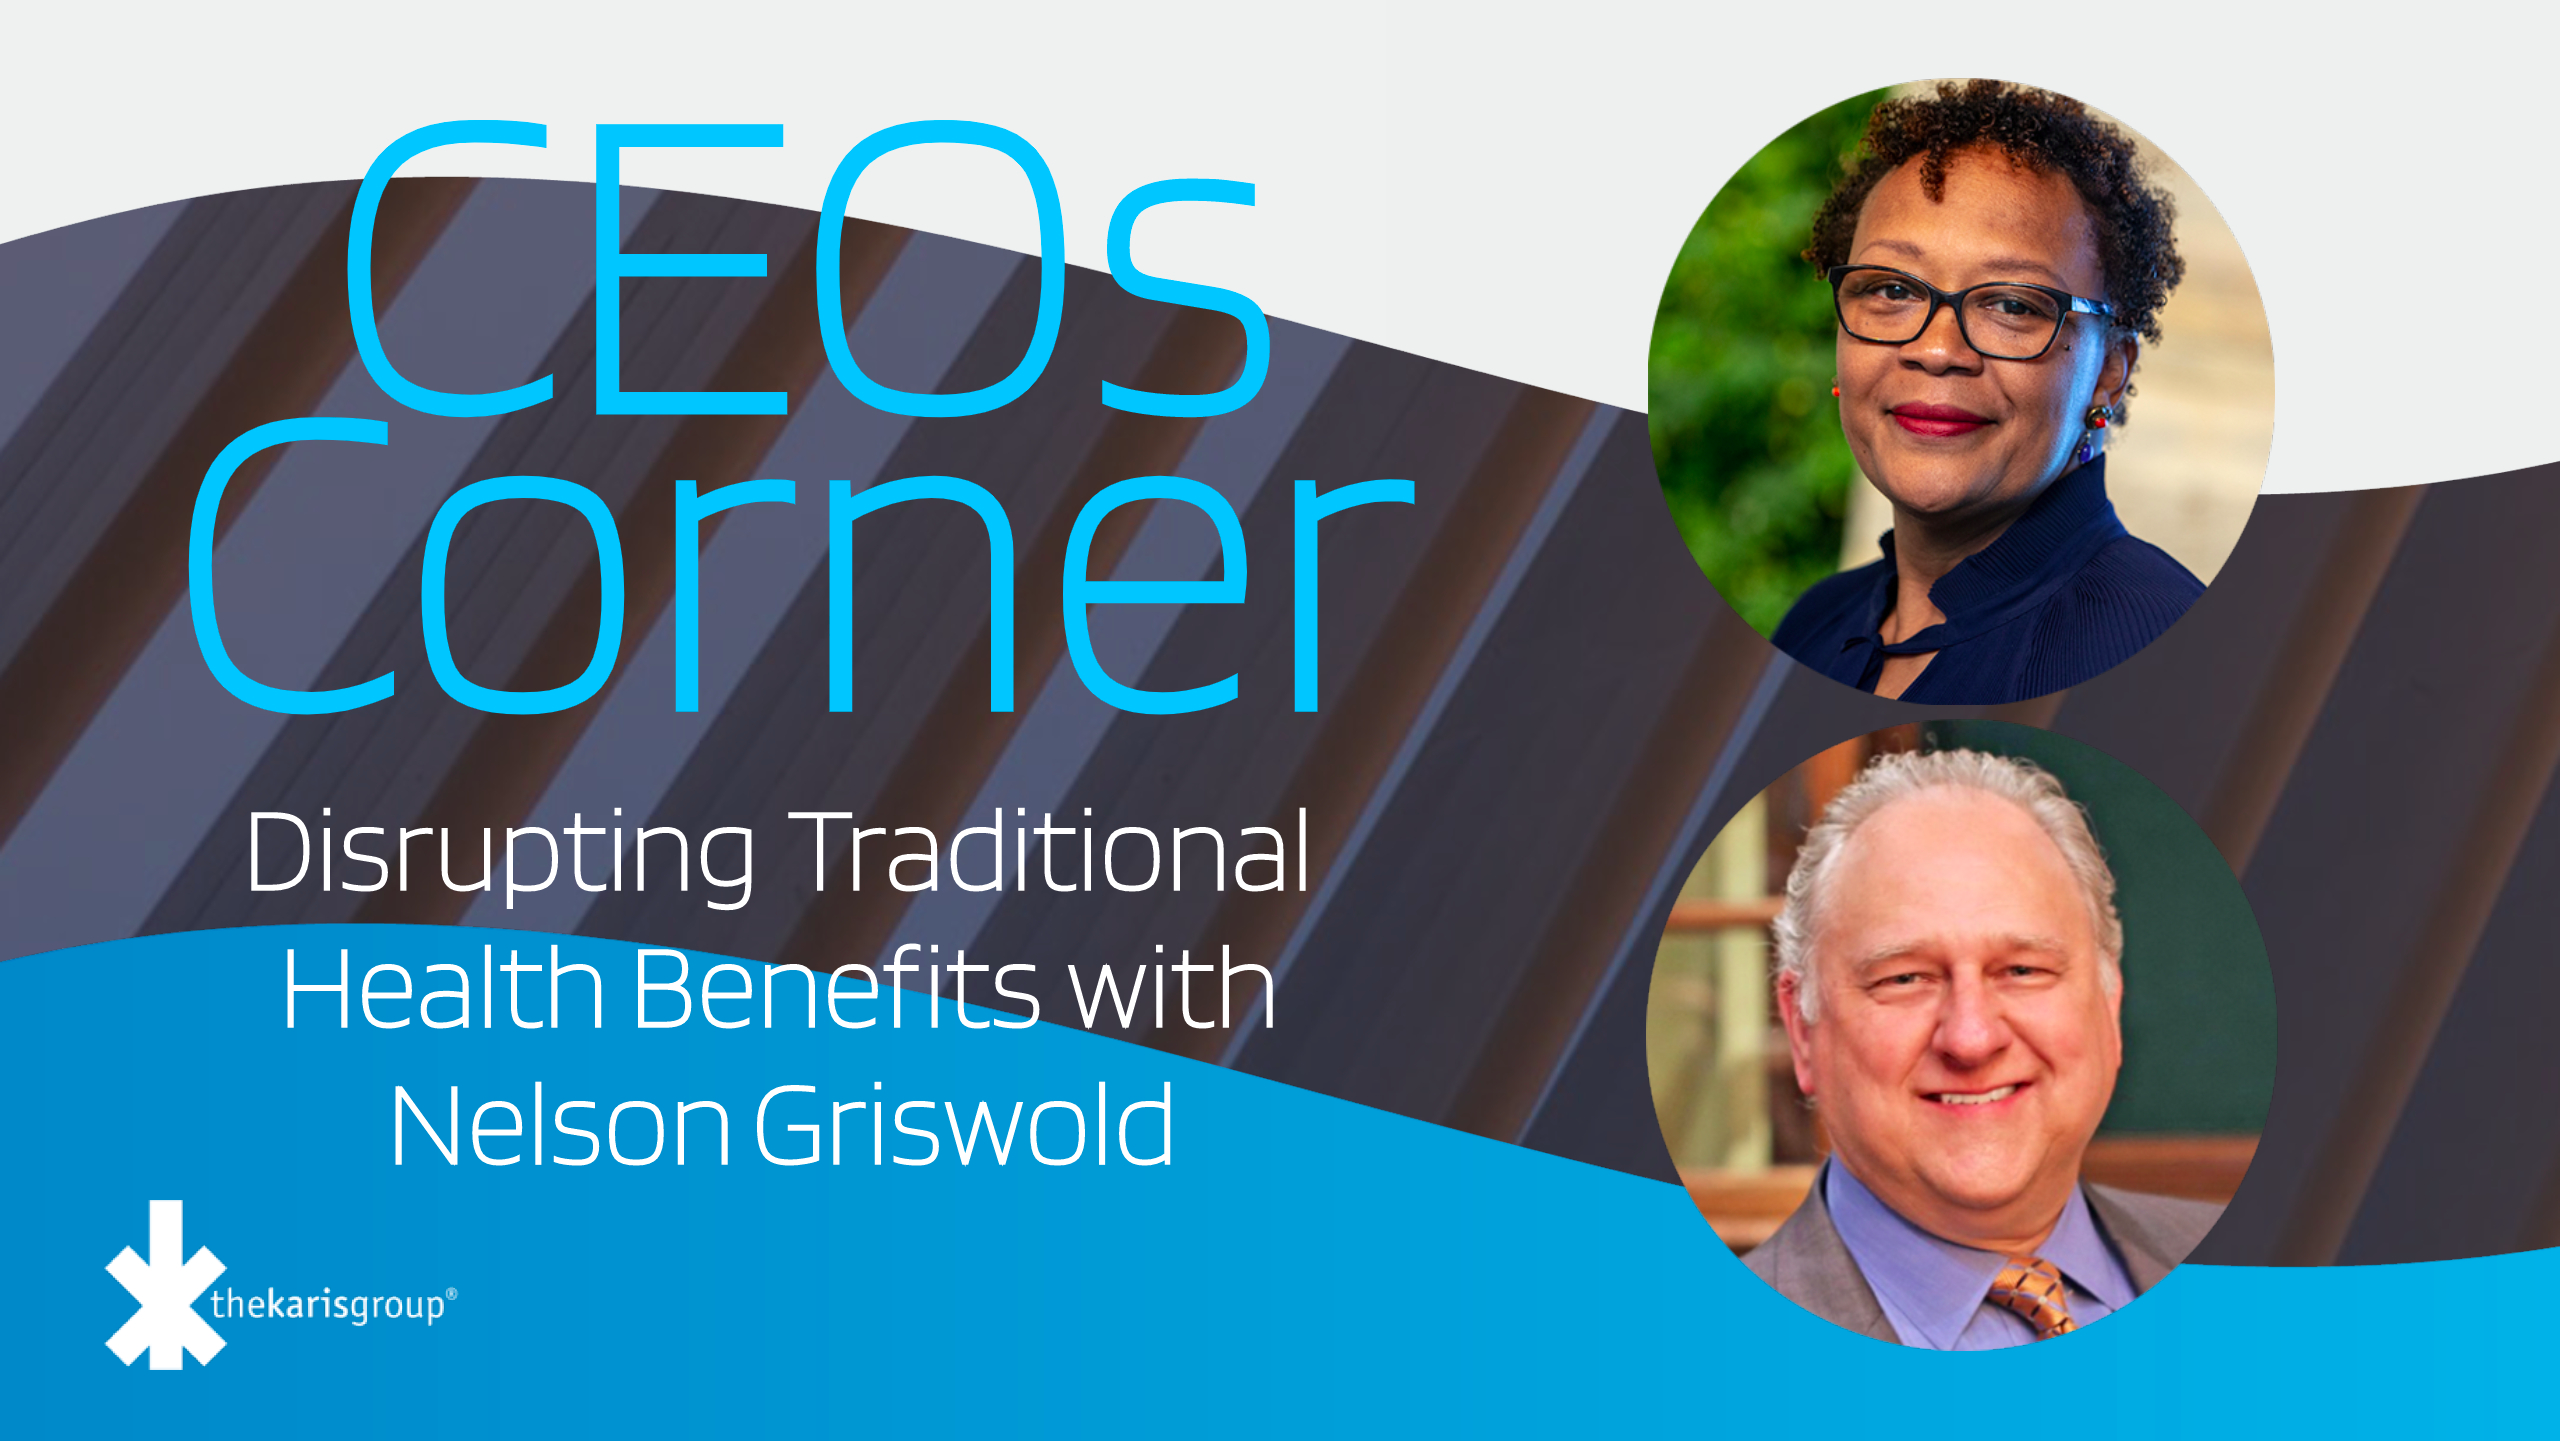 CEOs Corner: Disrupting Traditional Health Benefits with Nelson Griswold